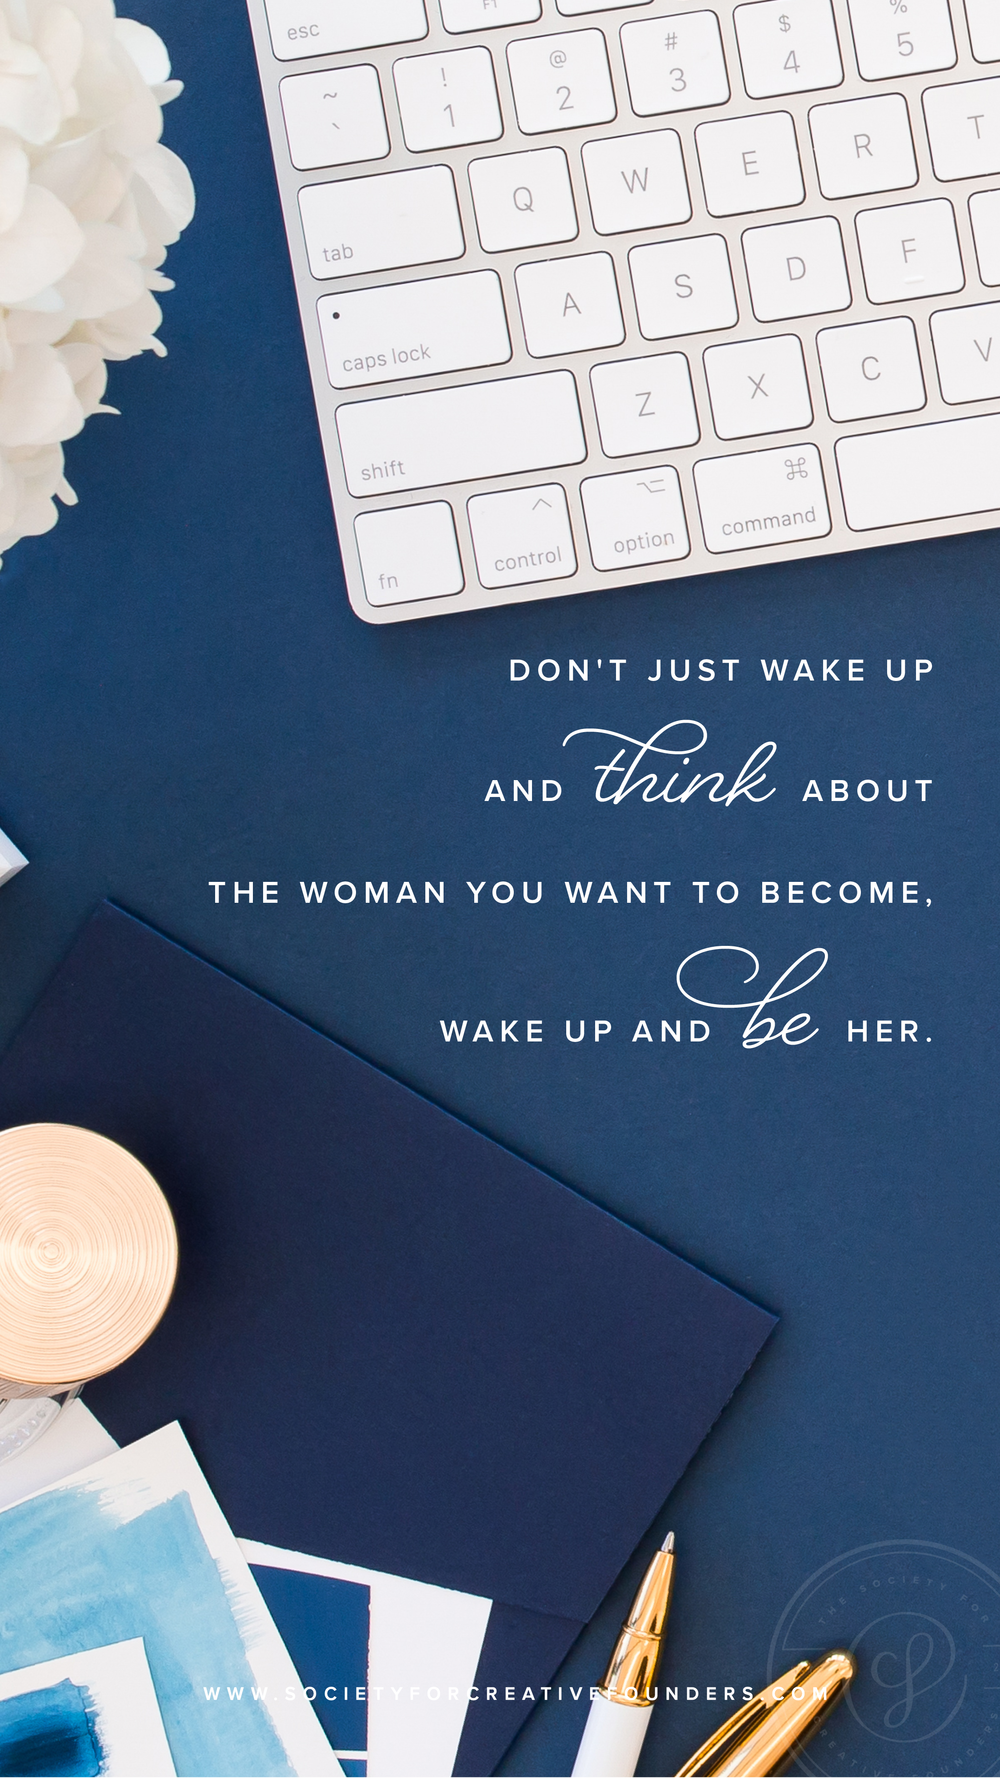 Don't just think about the woman you want to become, wake up and BE her. - note from Kristin, Fall 2018 - Society for Creative Founders